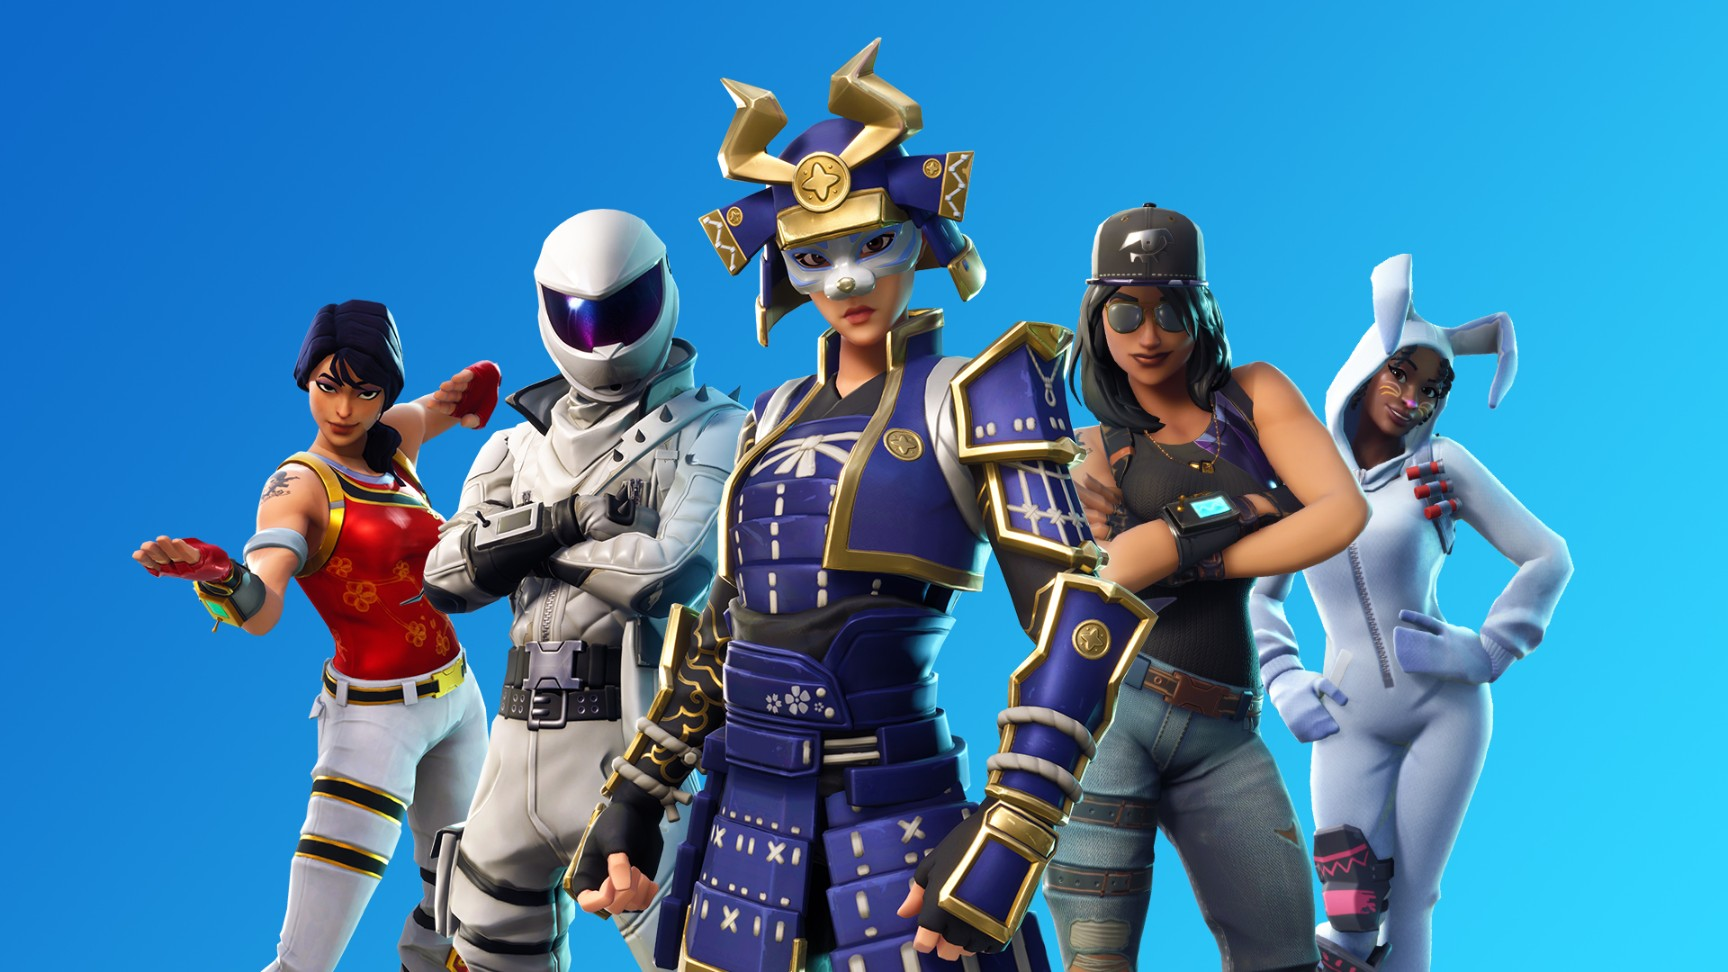 Fortnite Wallpapers